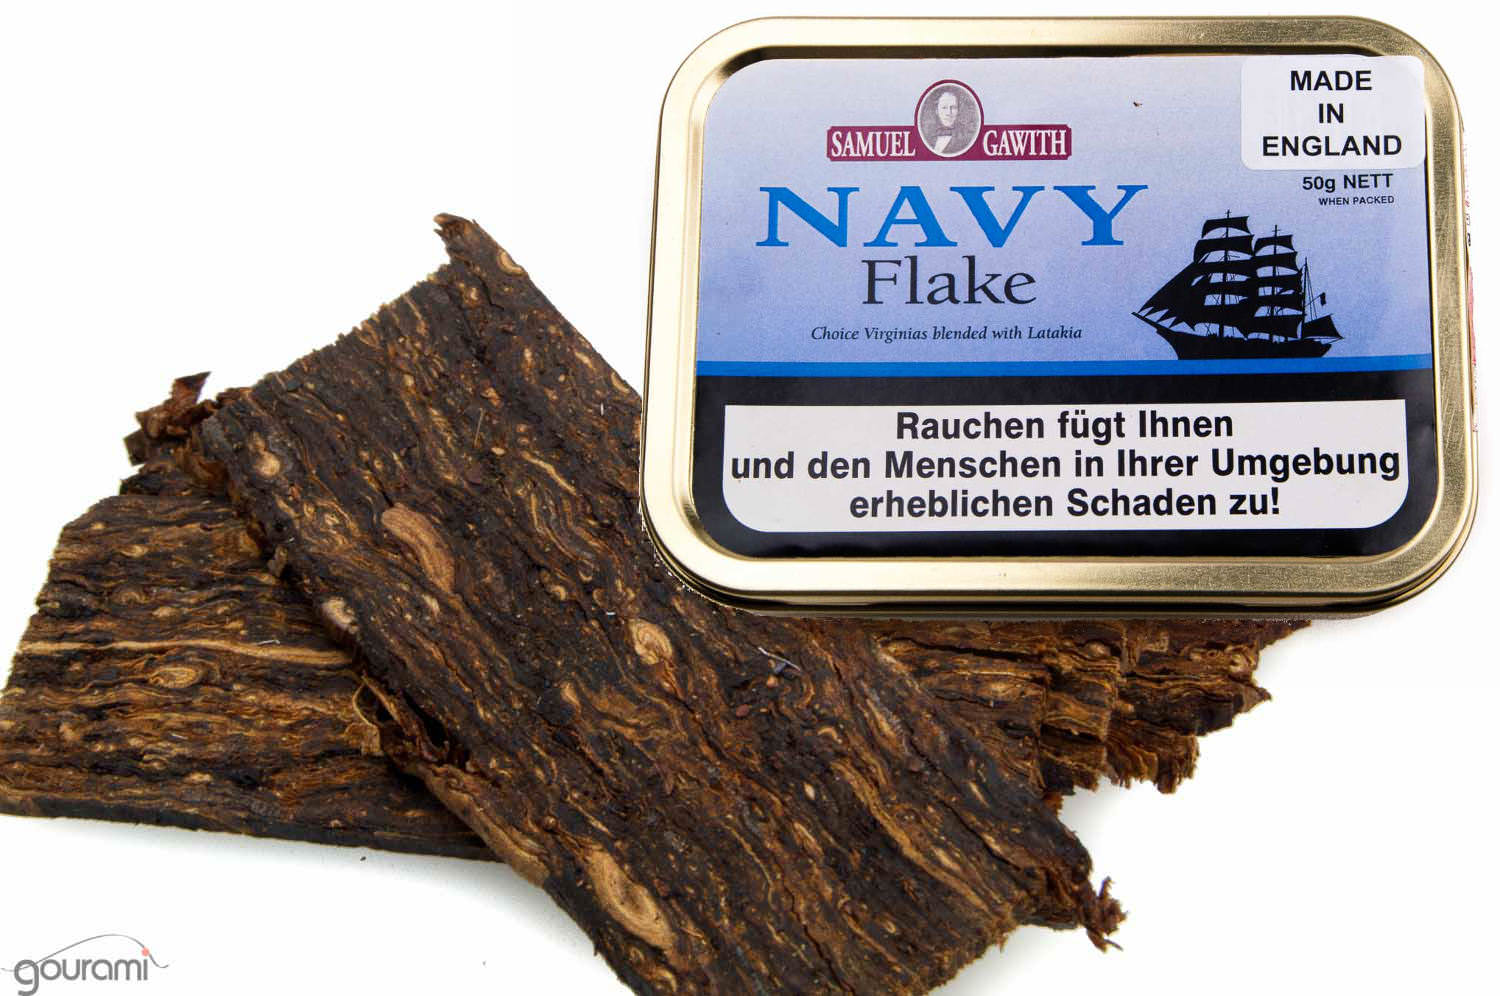 Samuel-Gawith_Navy-Flake